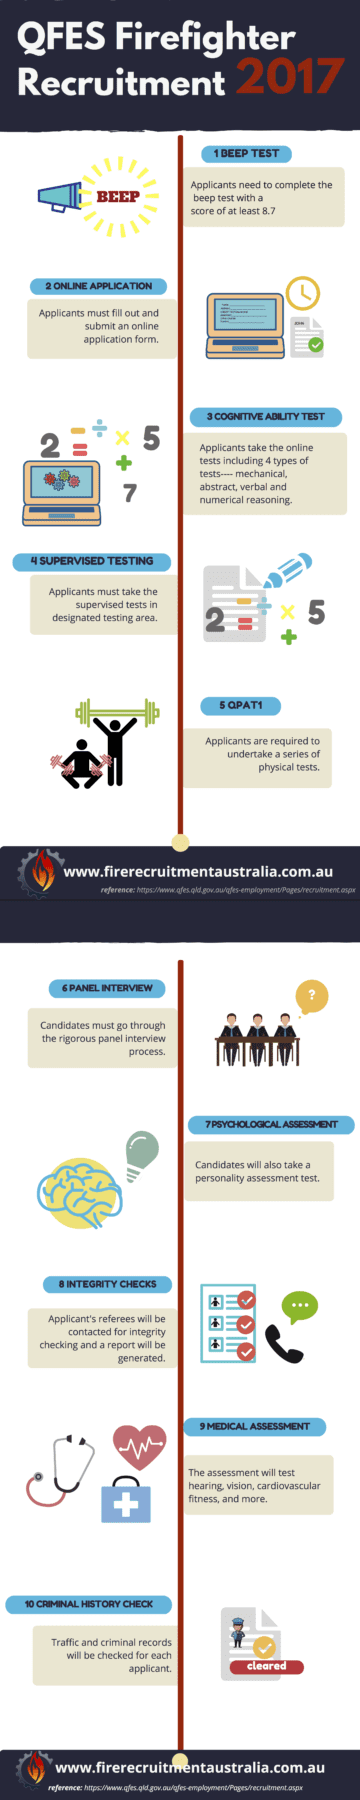 QFES Firefighter Recruitment Process